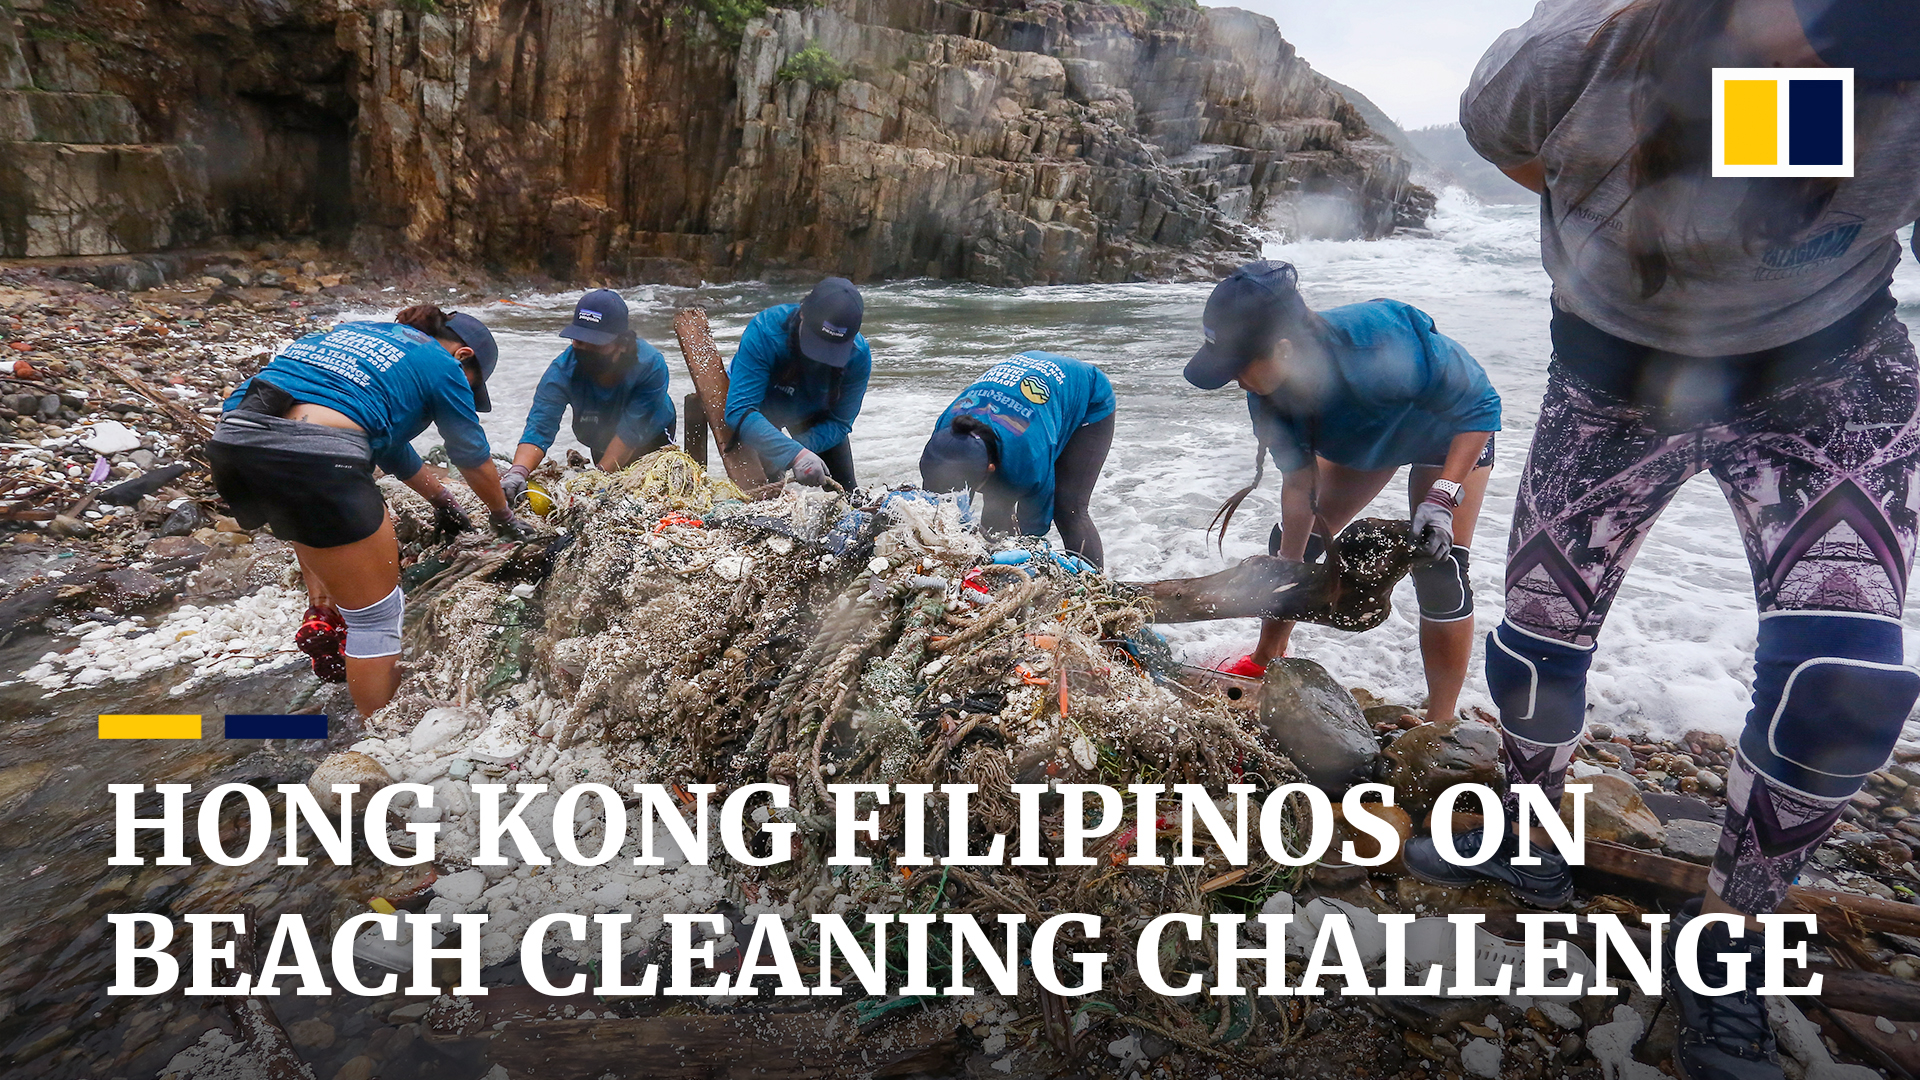 Domestic helpers tackle Hong Kong beach plastic pollution in extreme